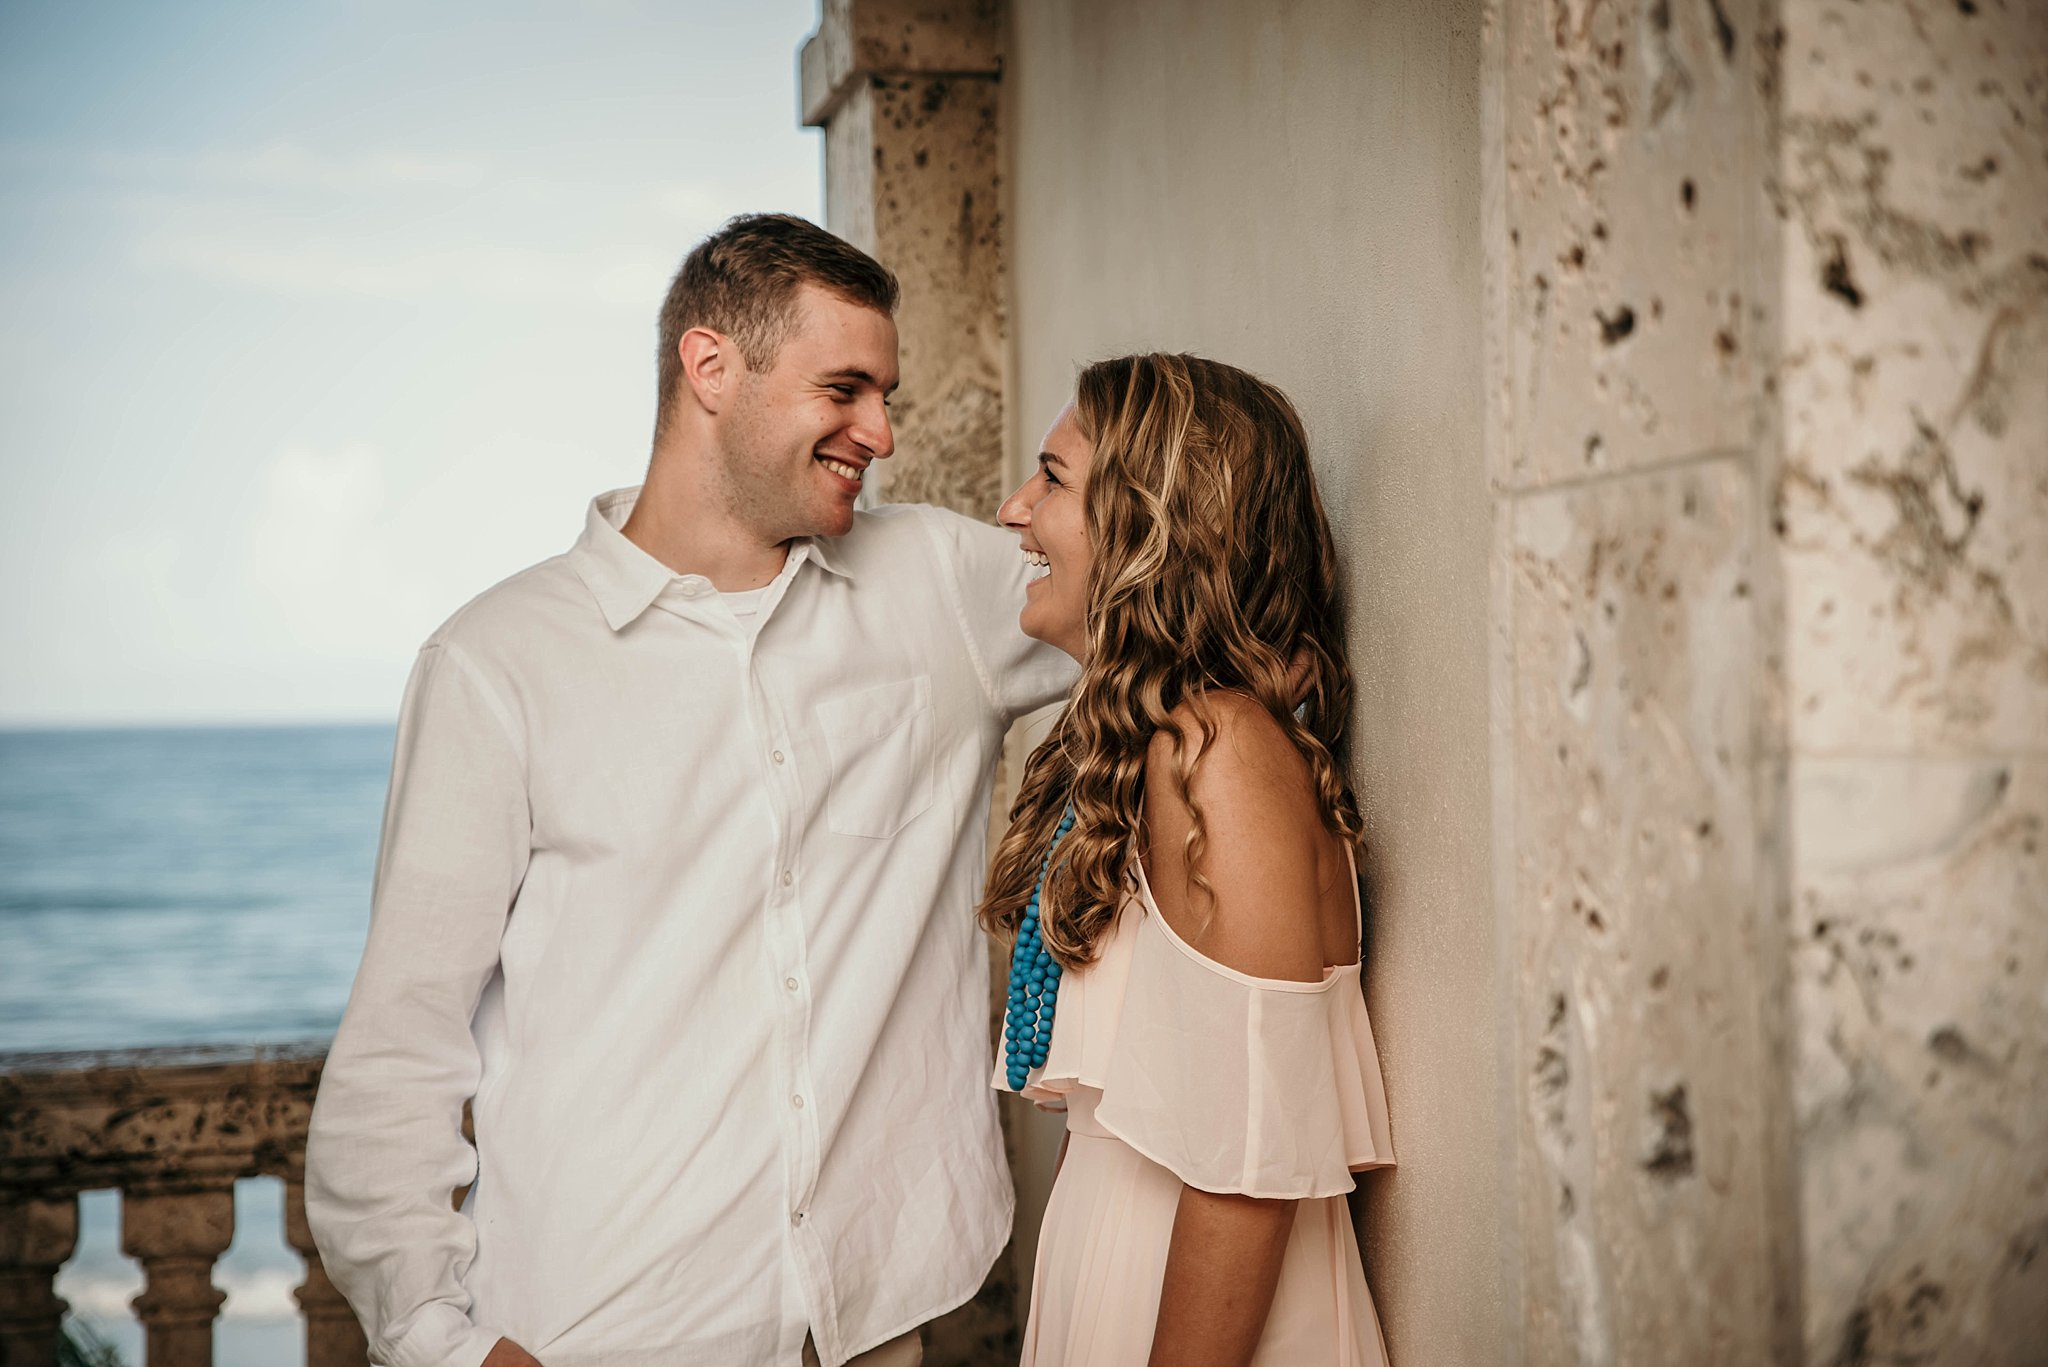 palm-beach-engagement-photos-florida-wedding-photographer_0006.jpg